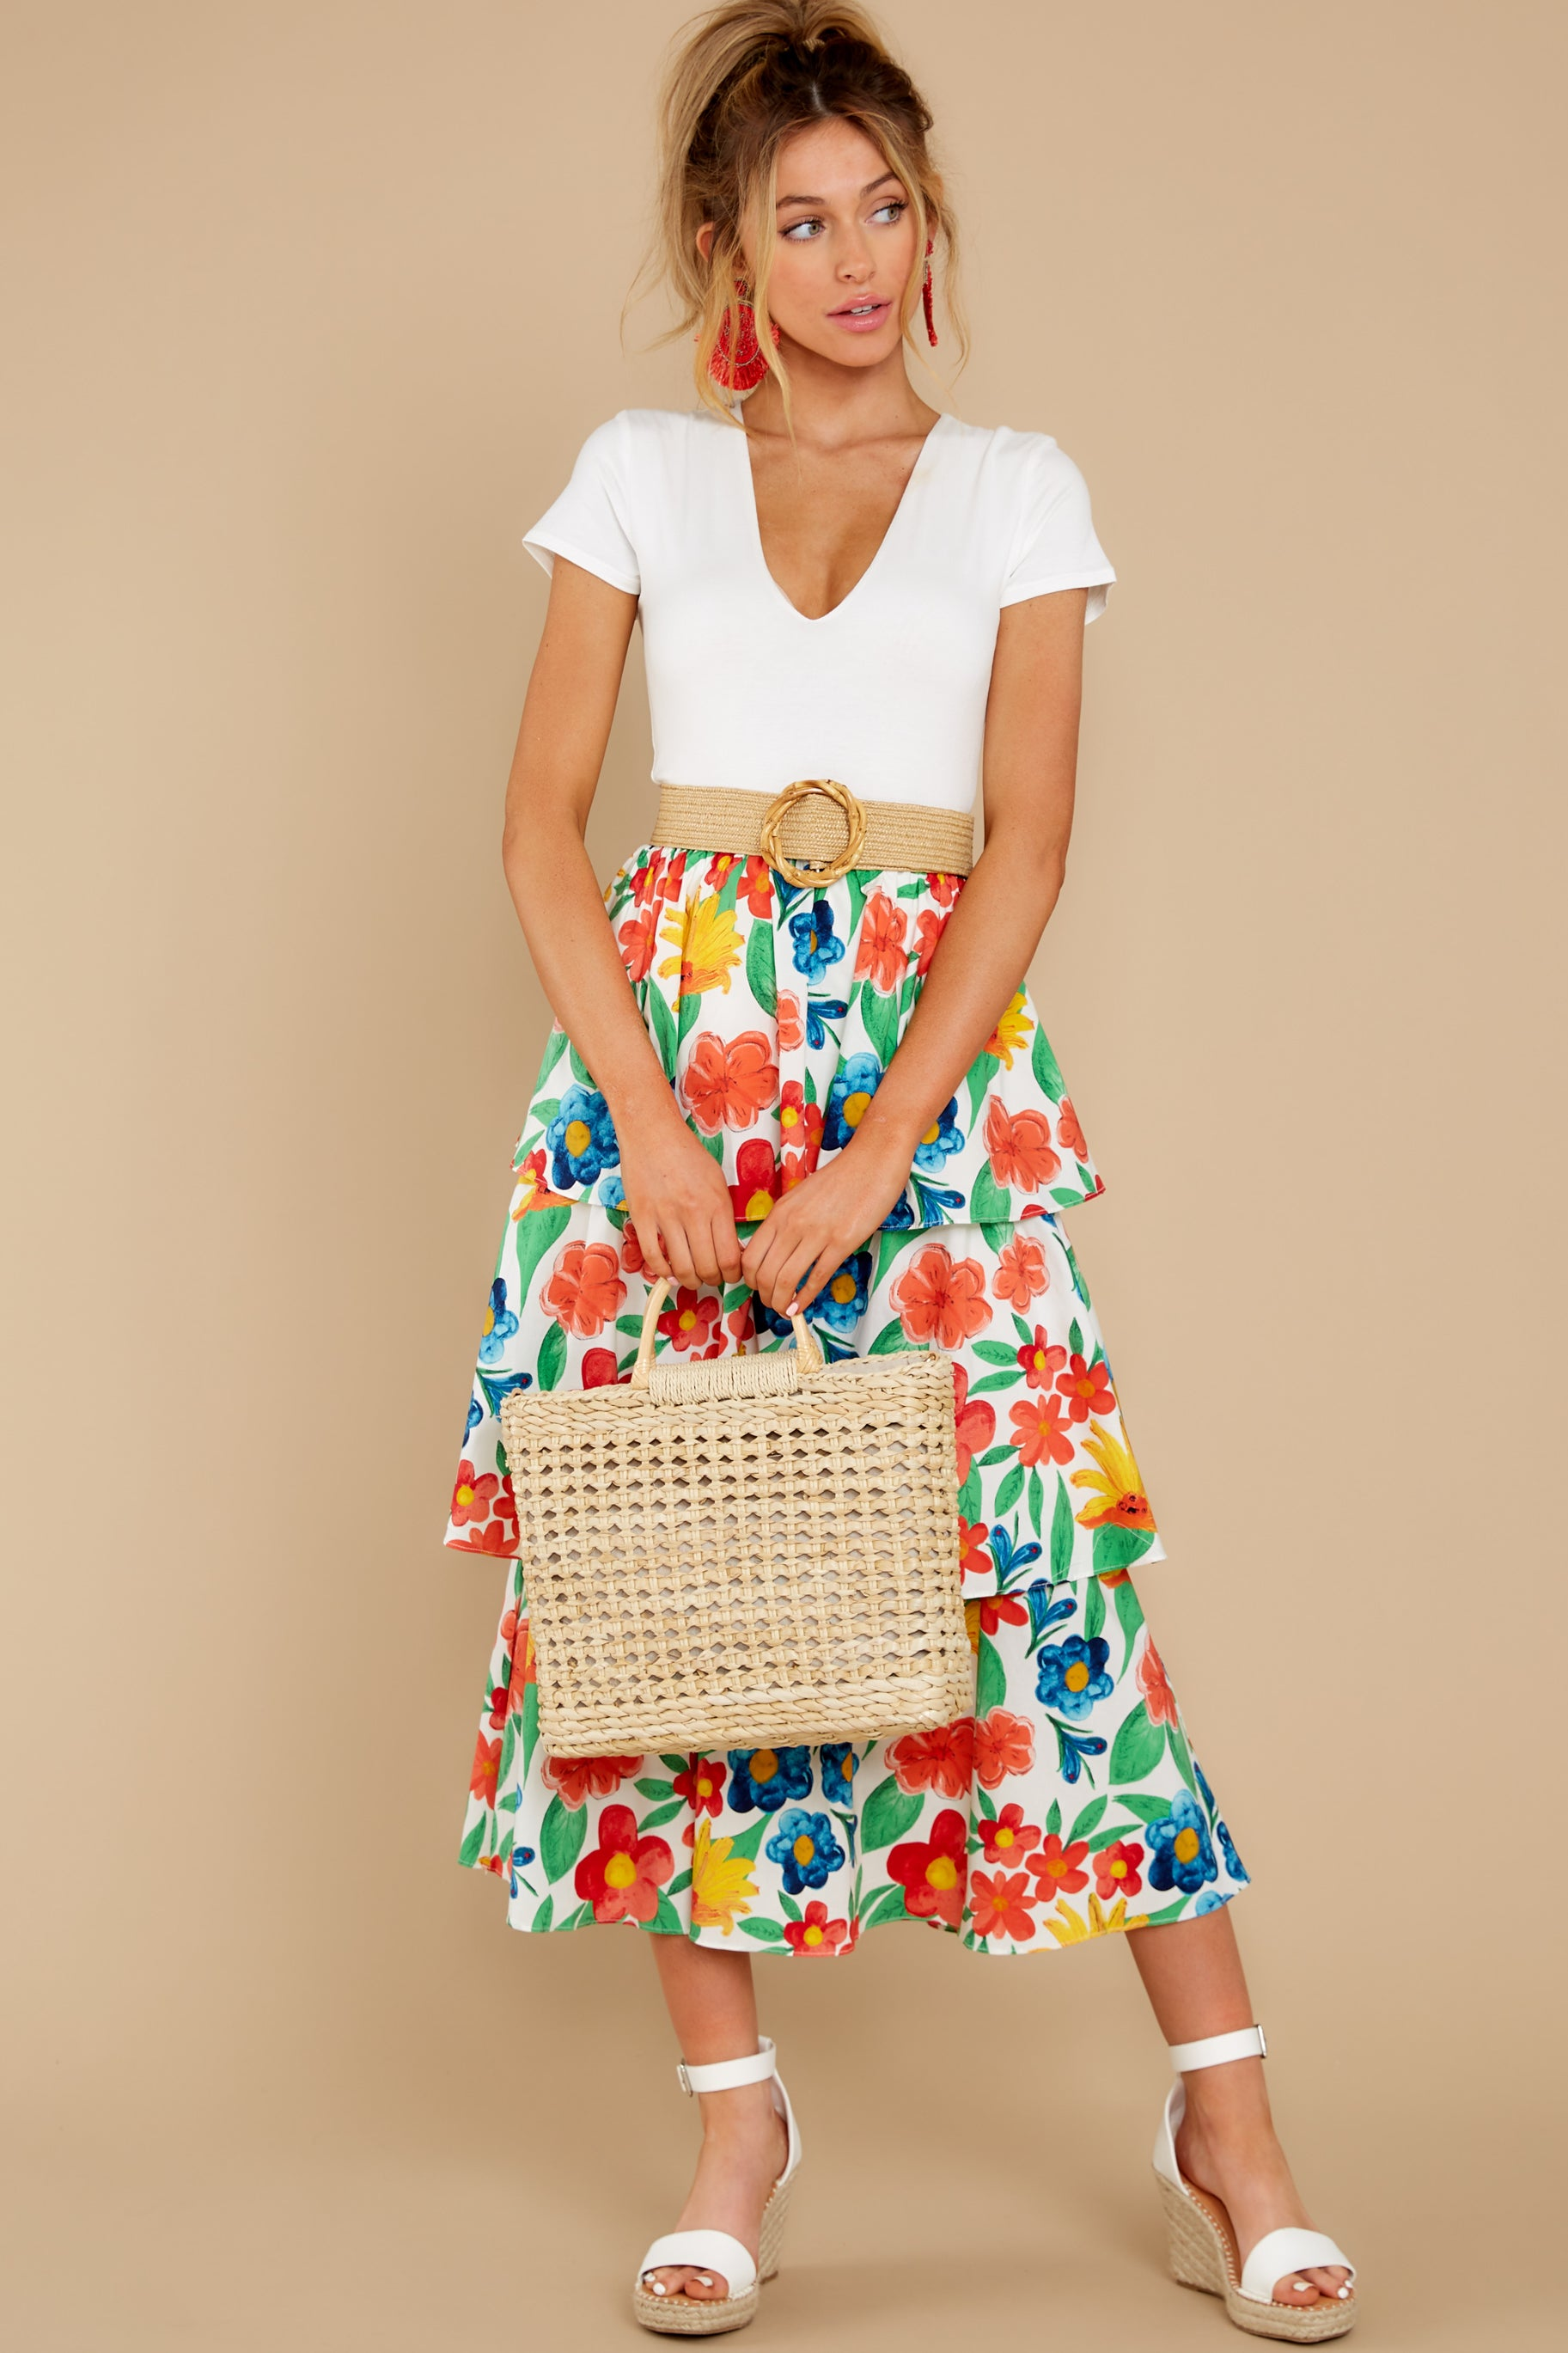 7 On Your Bright Side White Floral Print Midi Skirt at reddress.com